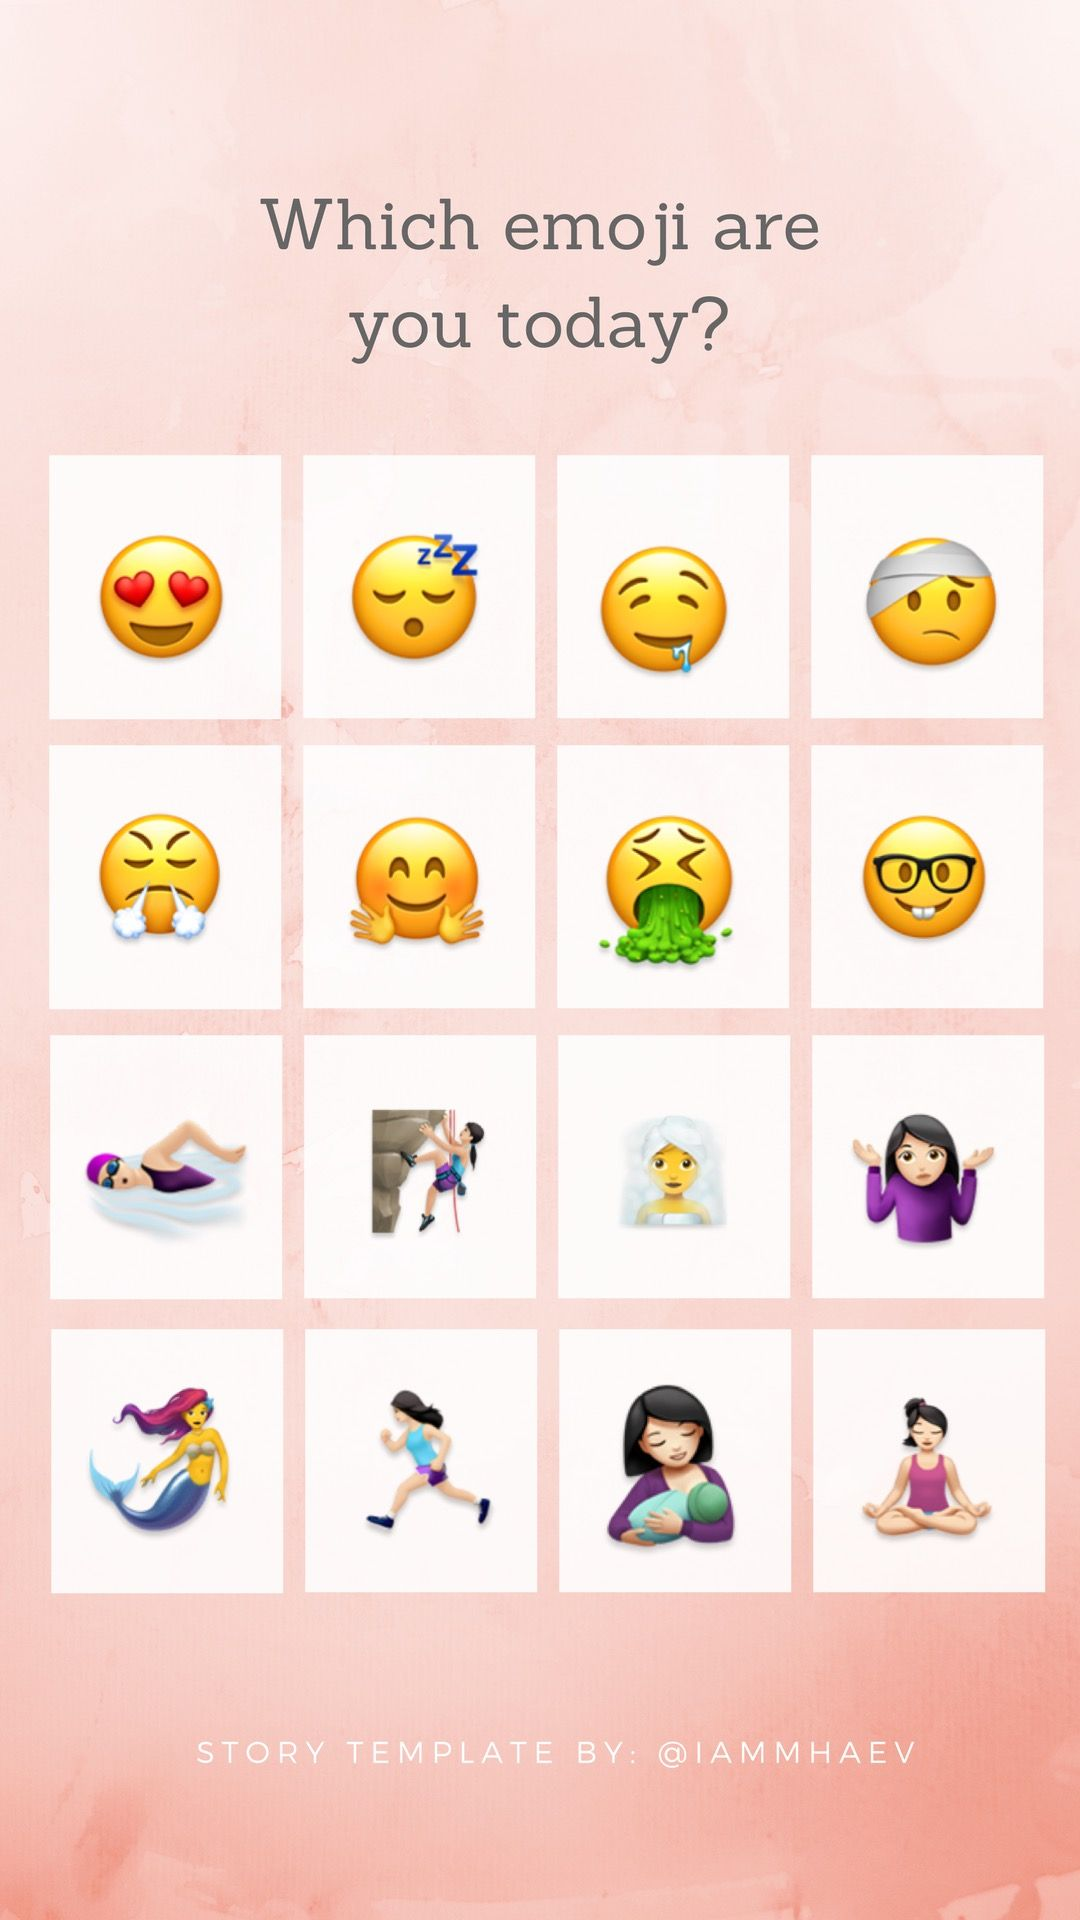 Which Emoji Are You Today Instagram Story Template Instagram Story Questions Instagram Challenge Instagram Story Ideas